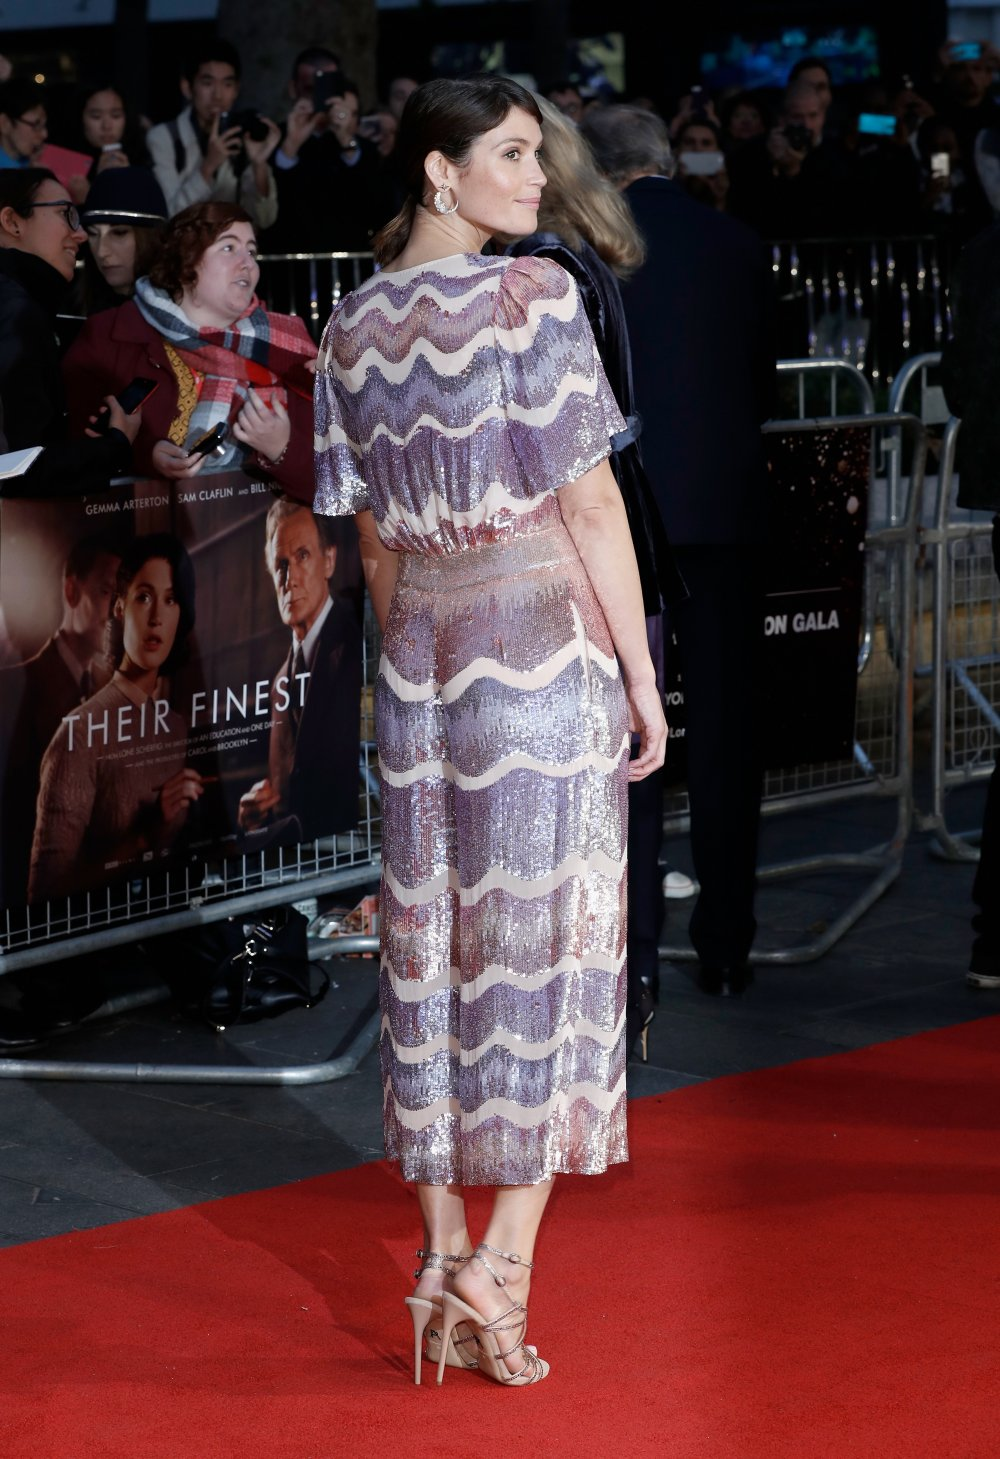 Gemma Arterton attends the Mayor's Centrepiece Gala screening of Their Finest